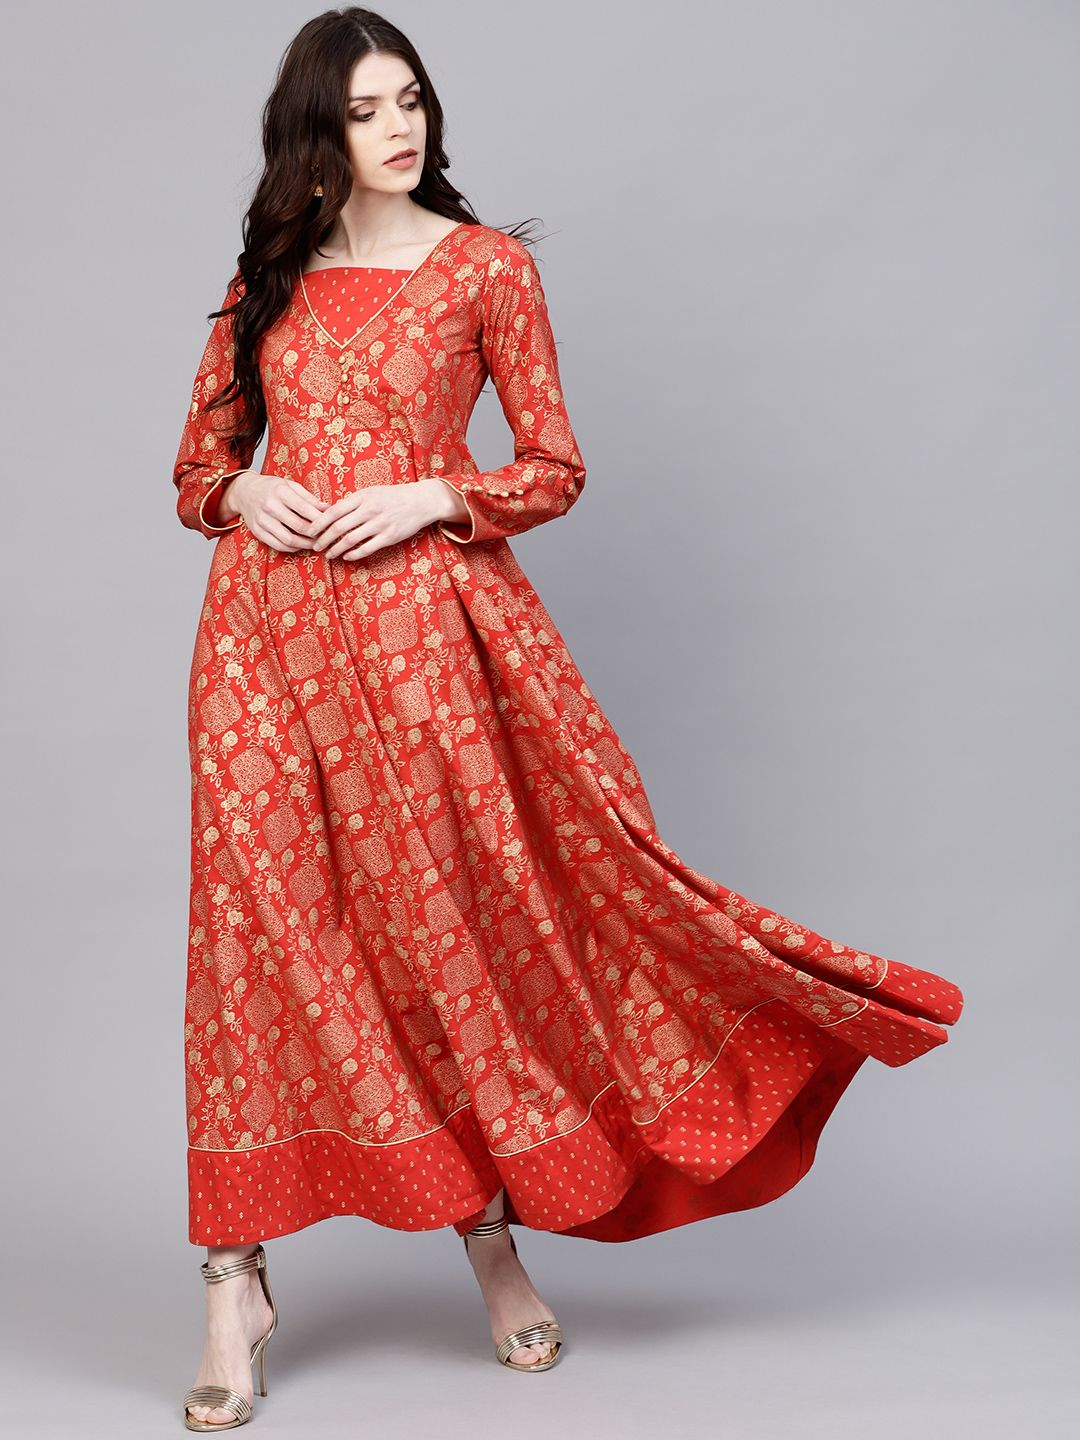 3063bfdc3f6 I love this AKS Women Rust Red   Golden Printed Maxi Dress - Dresses for  Women 7584990